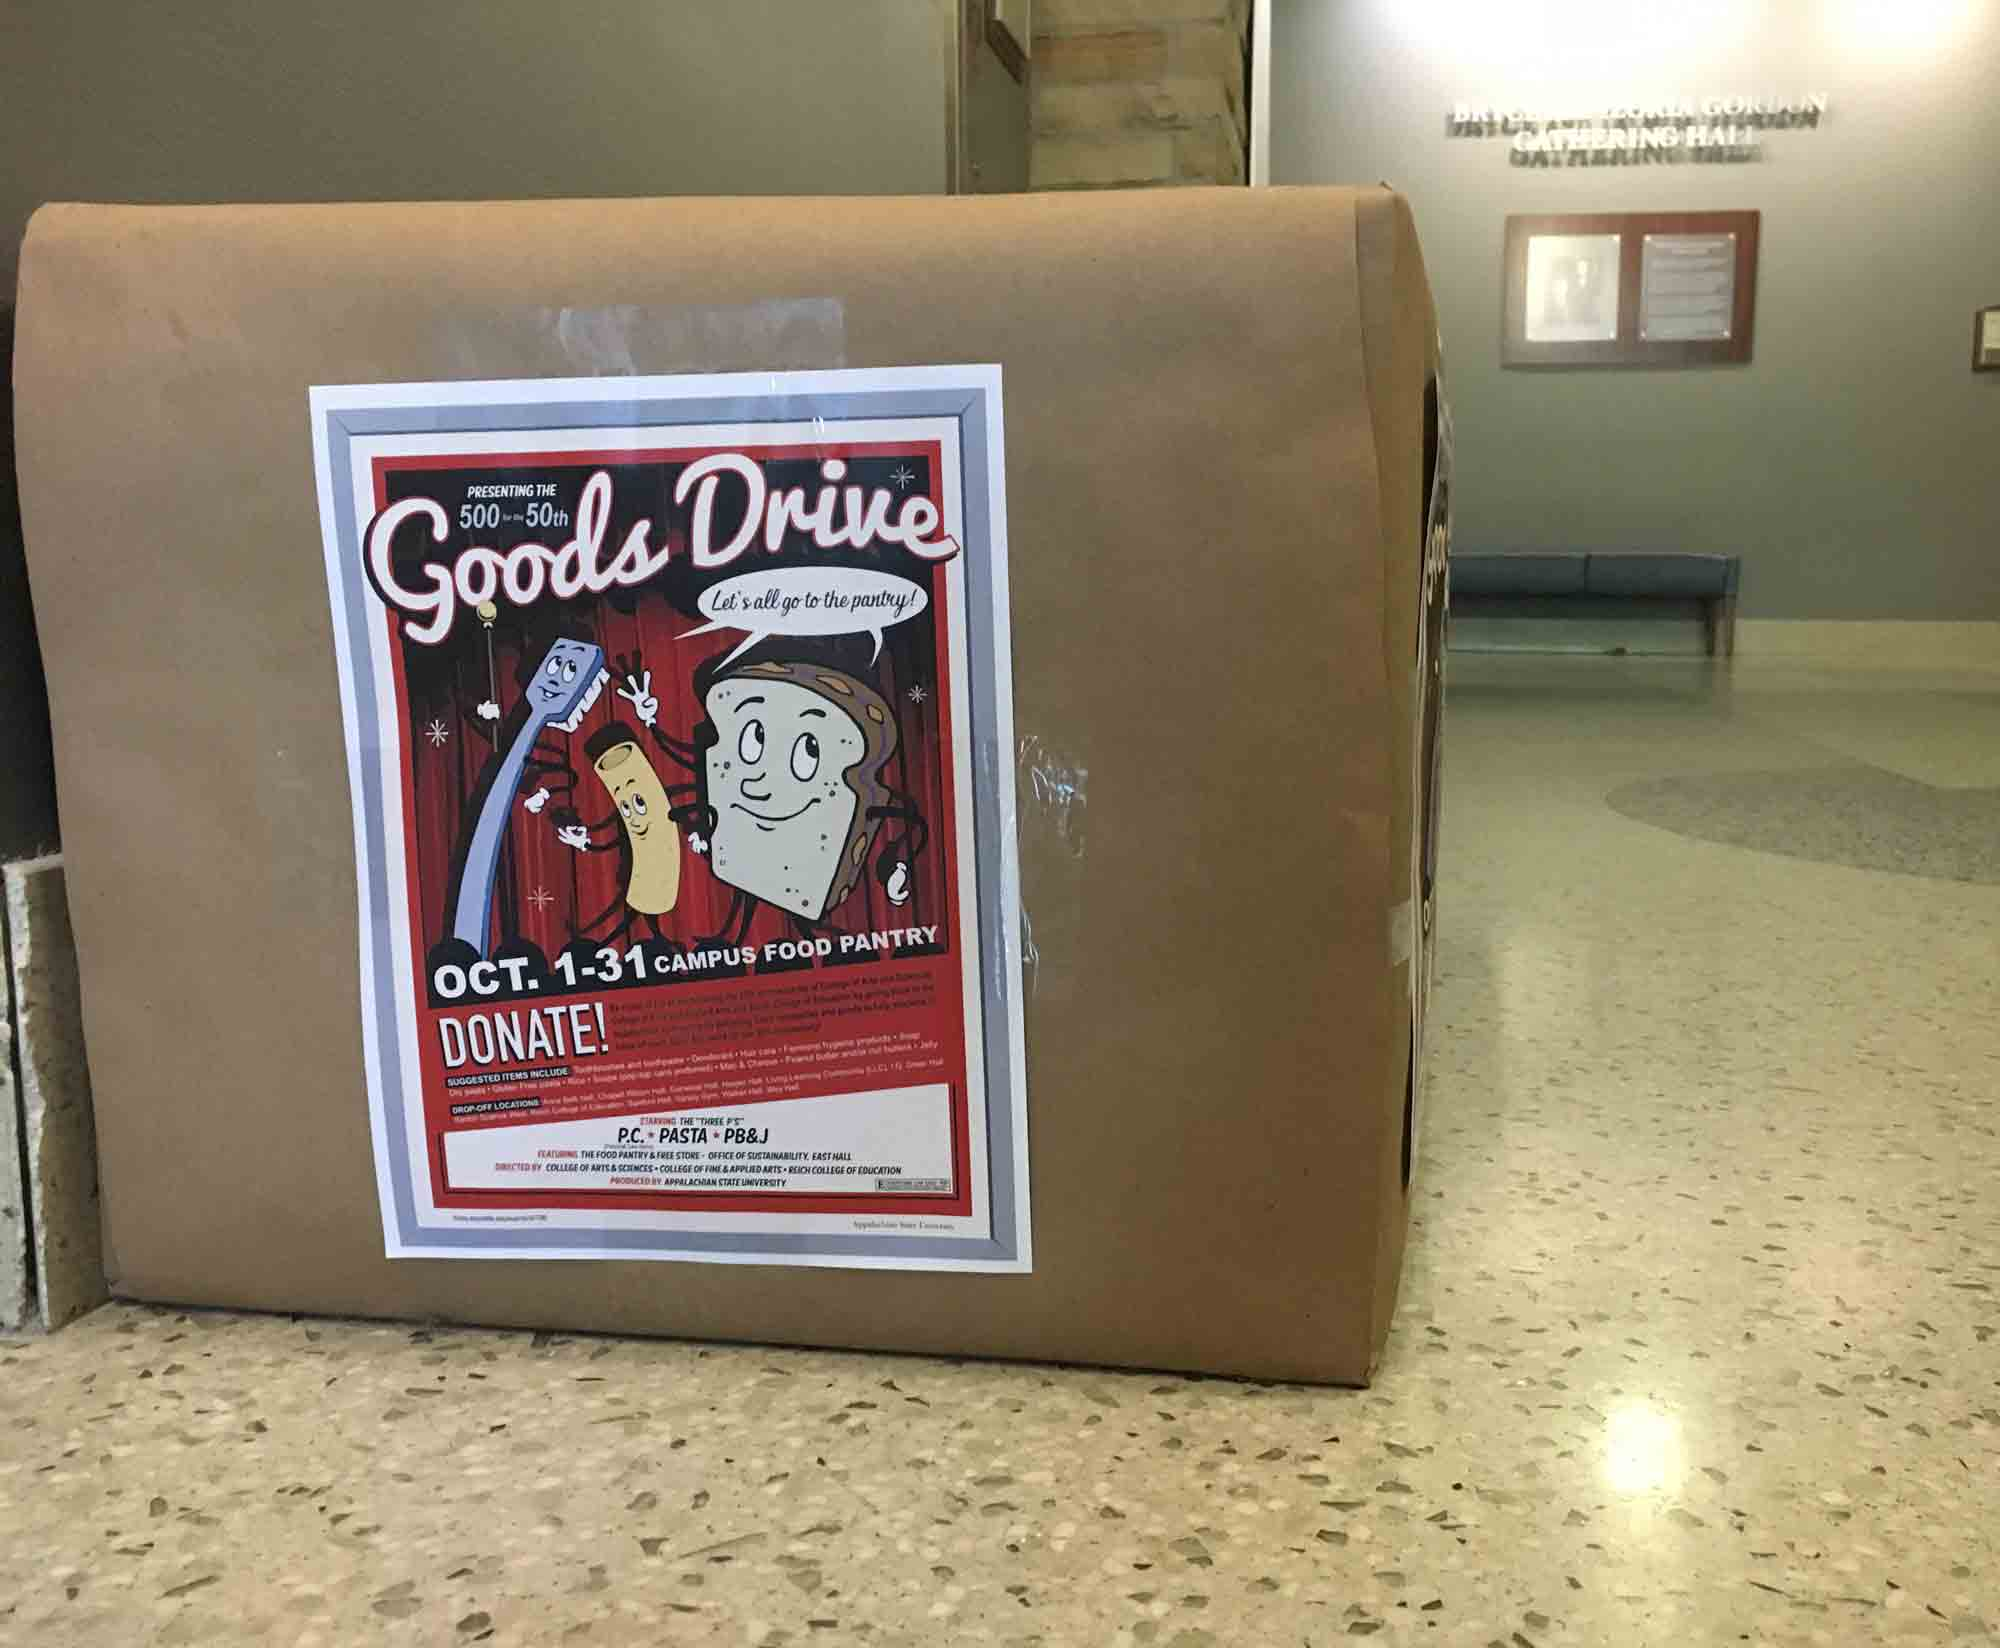 Three academic colleges celebrate 50th anniversary with goods drive